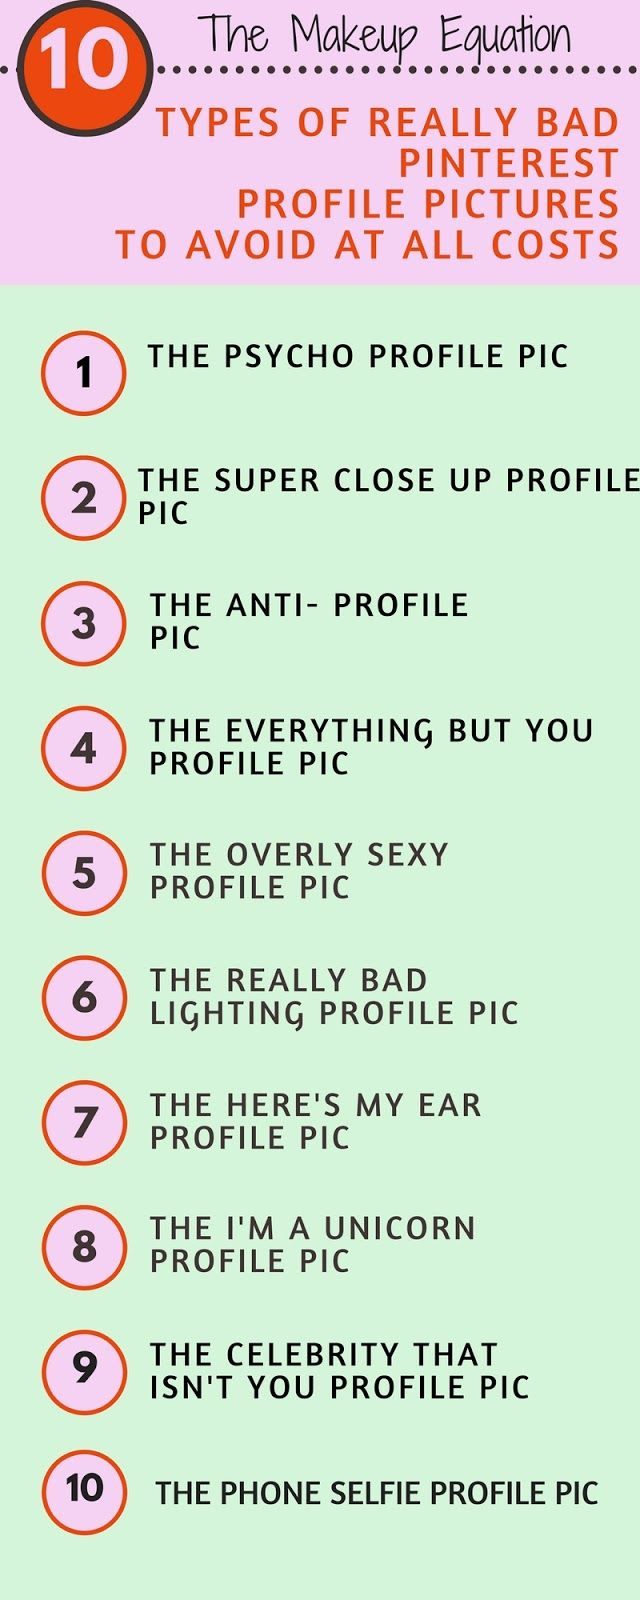 10 Types of Really Bad Pinterest Profile Pictures To Avoid At All Costs